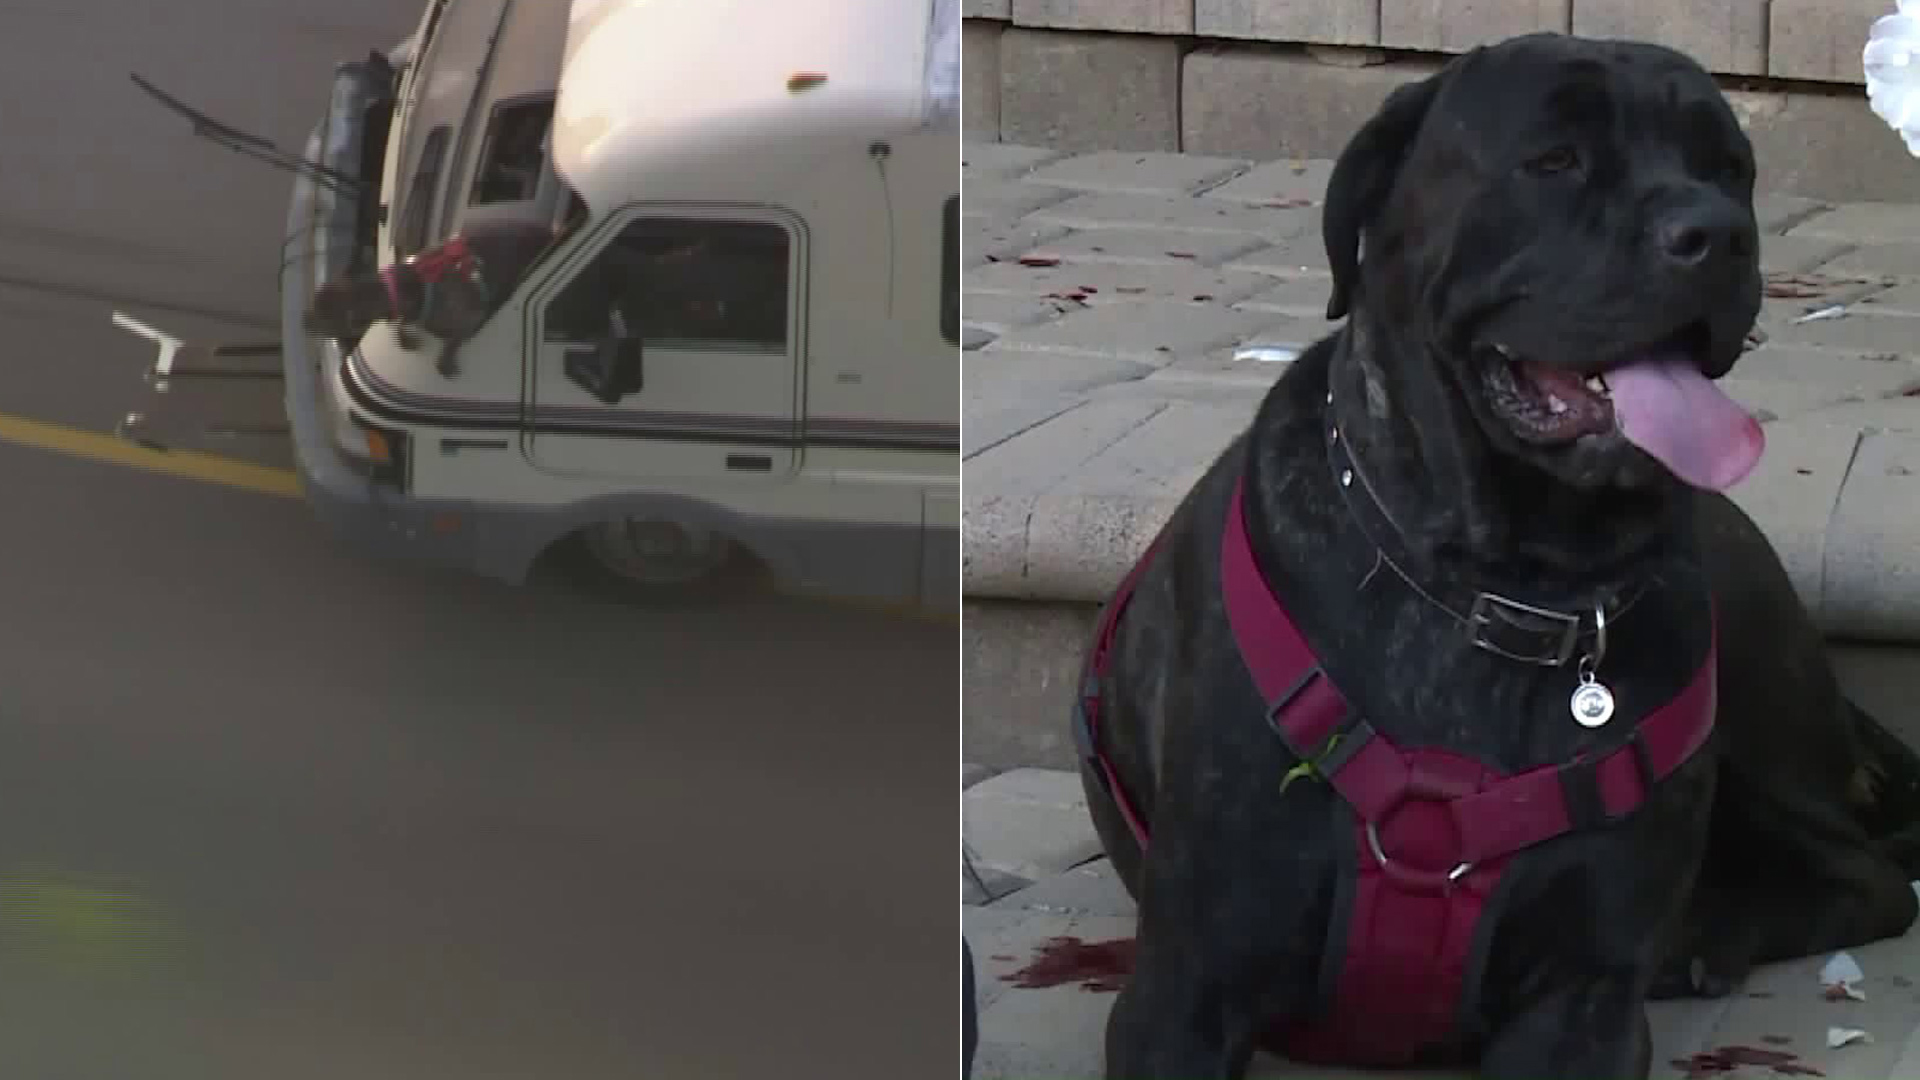 One of the dogs, left, jumped from a moving RV during the pursuit; the other was found with an injured and bloodied paw after the chase. (Credit: KTLA)